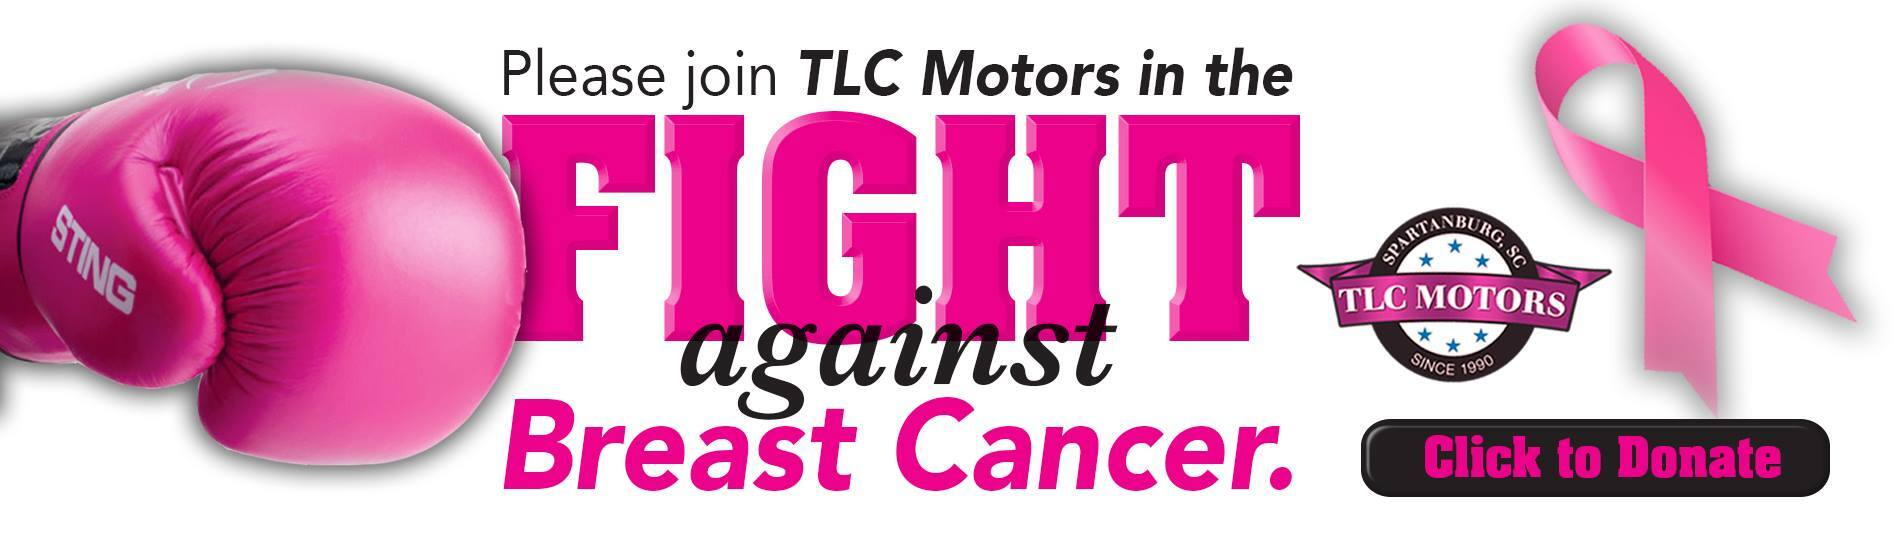 TLC Breast Cancer Awareness Month